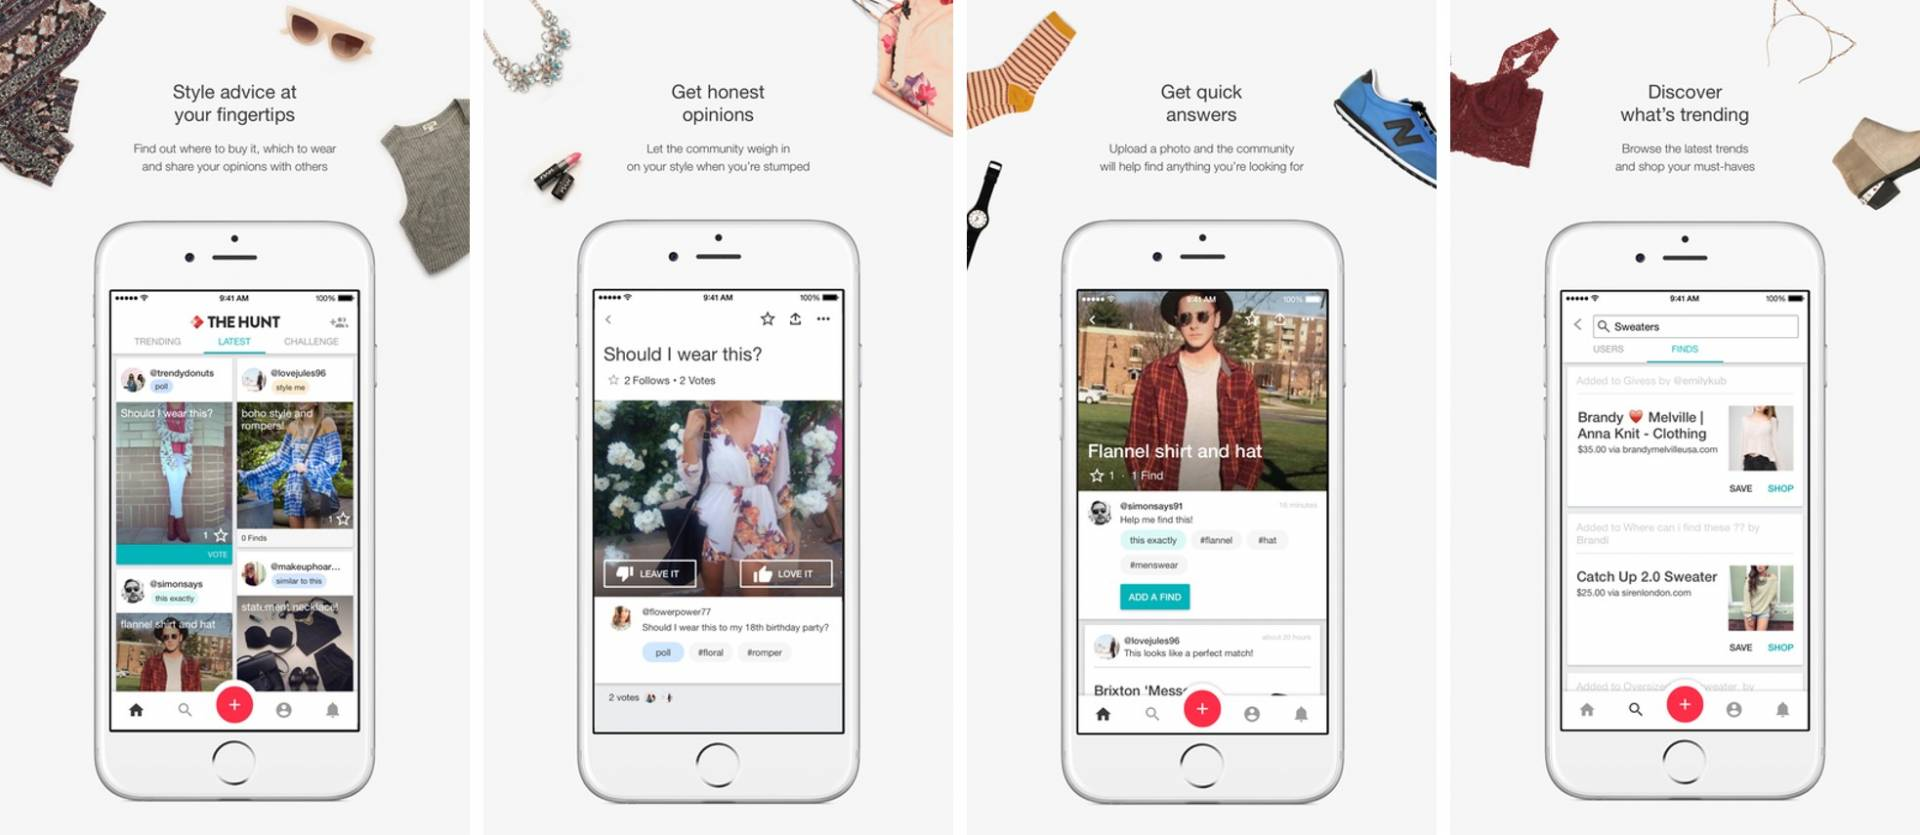 the hunt fashion app